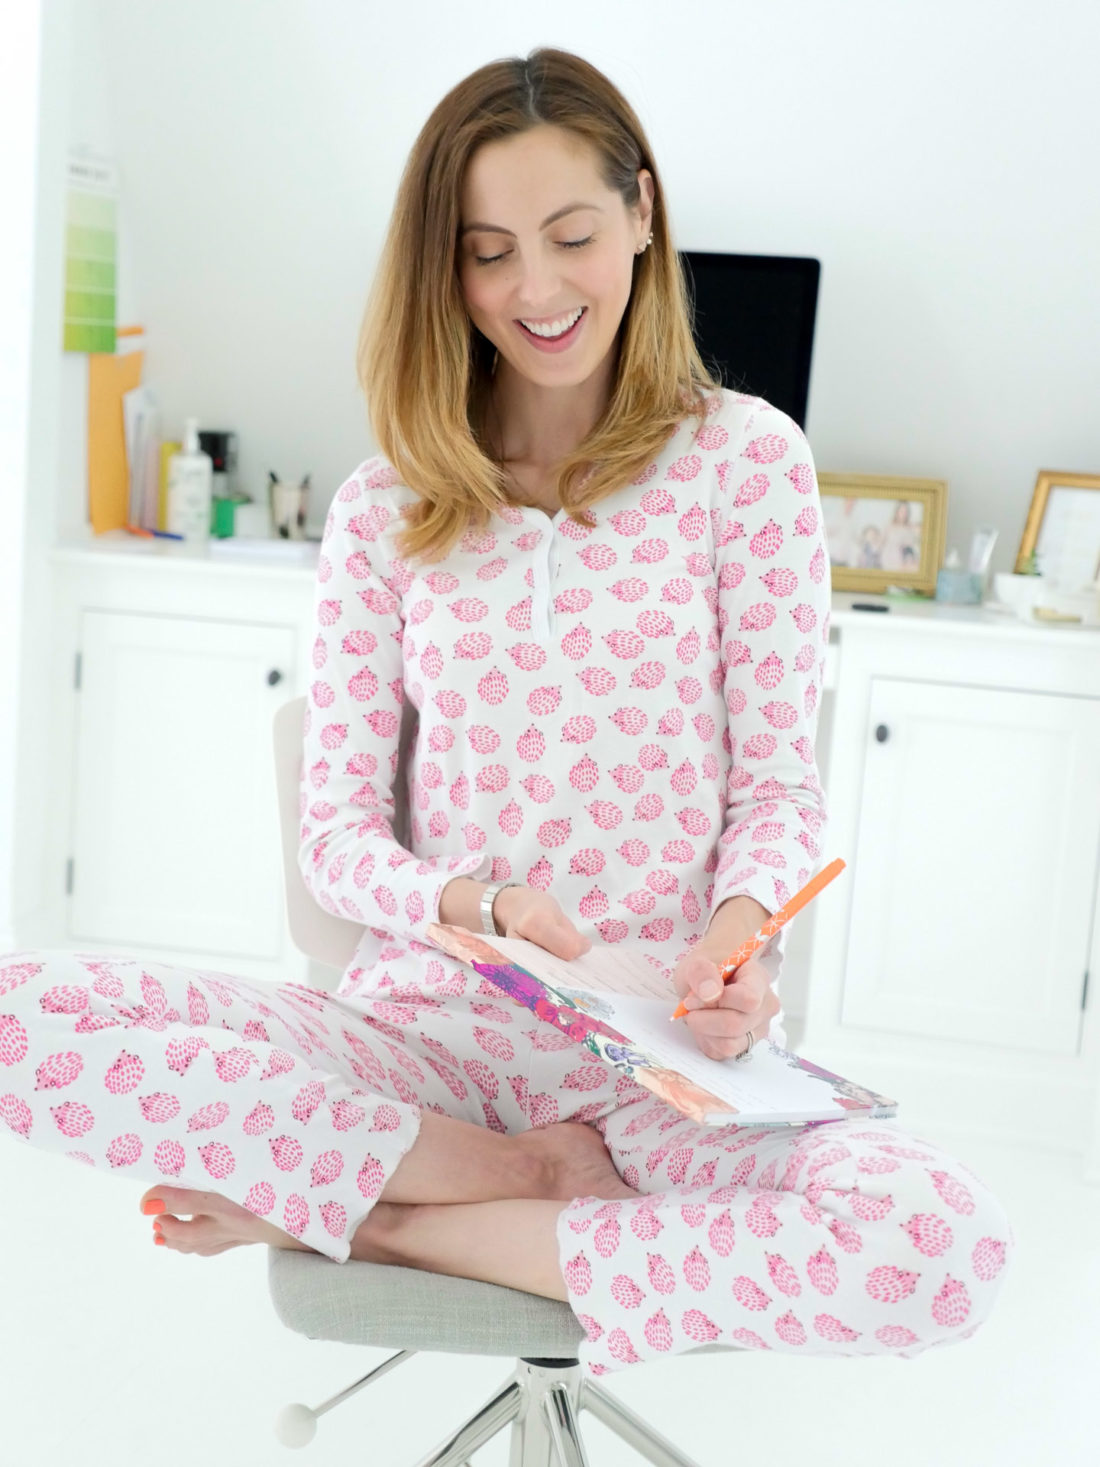 Eva Amurri Martino sets her calendar for the day ahead, wearing pajamas